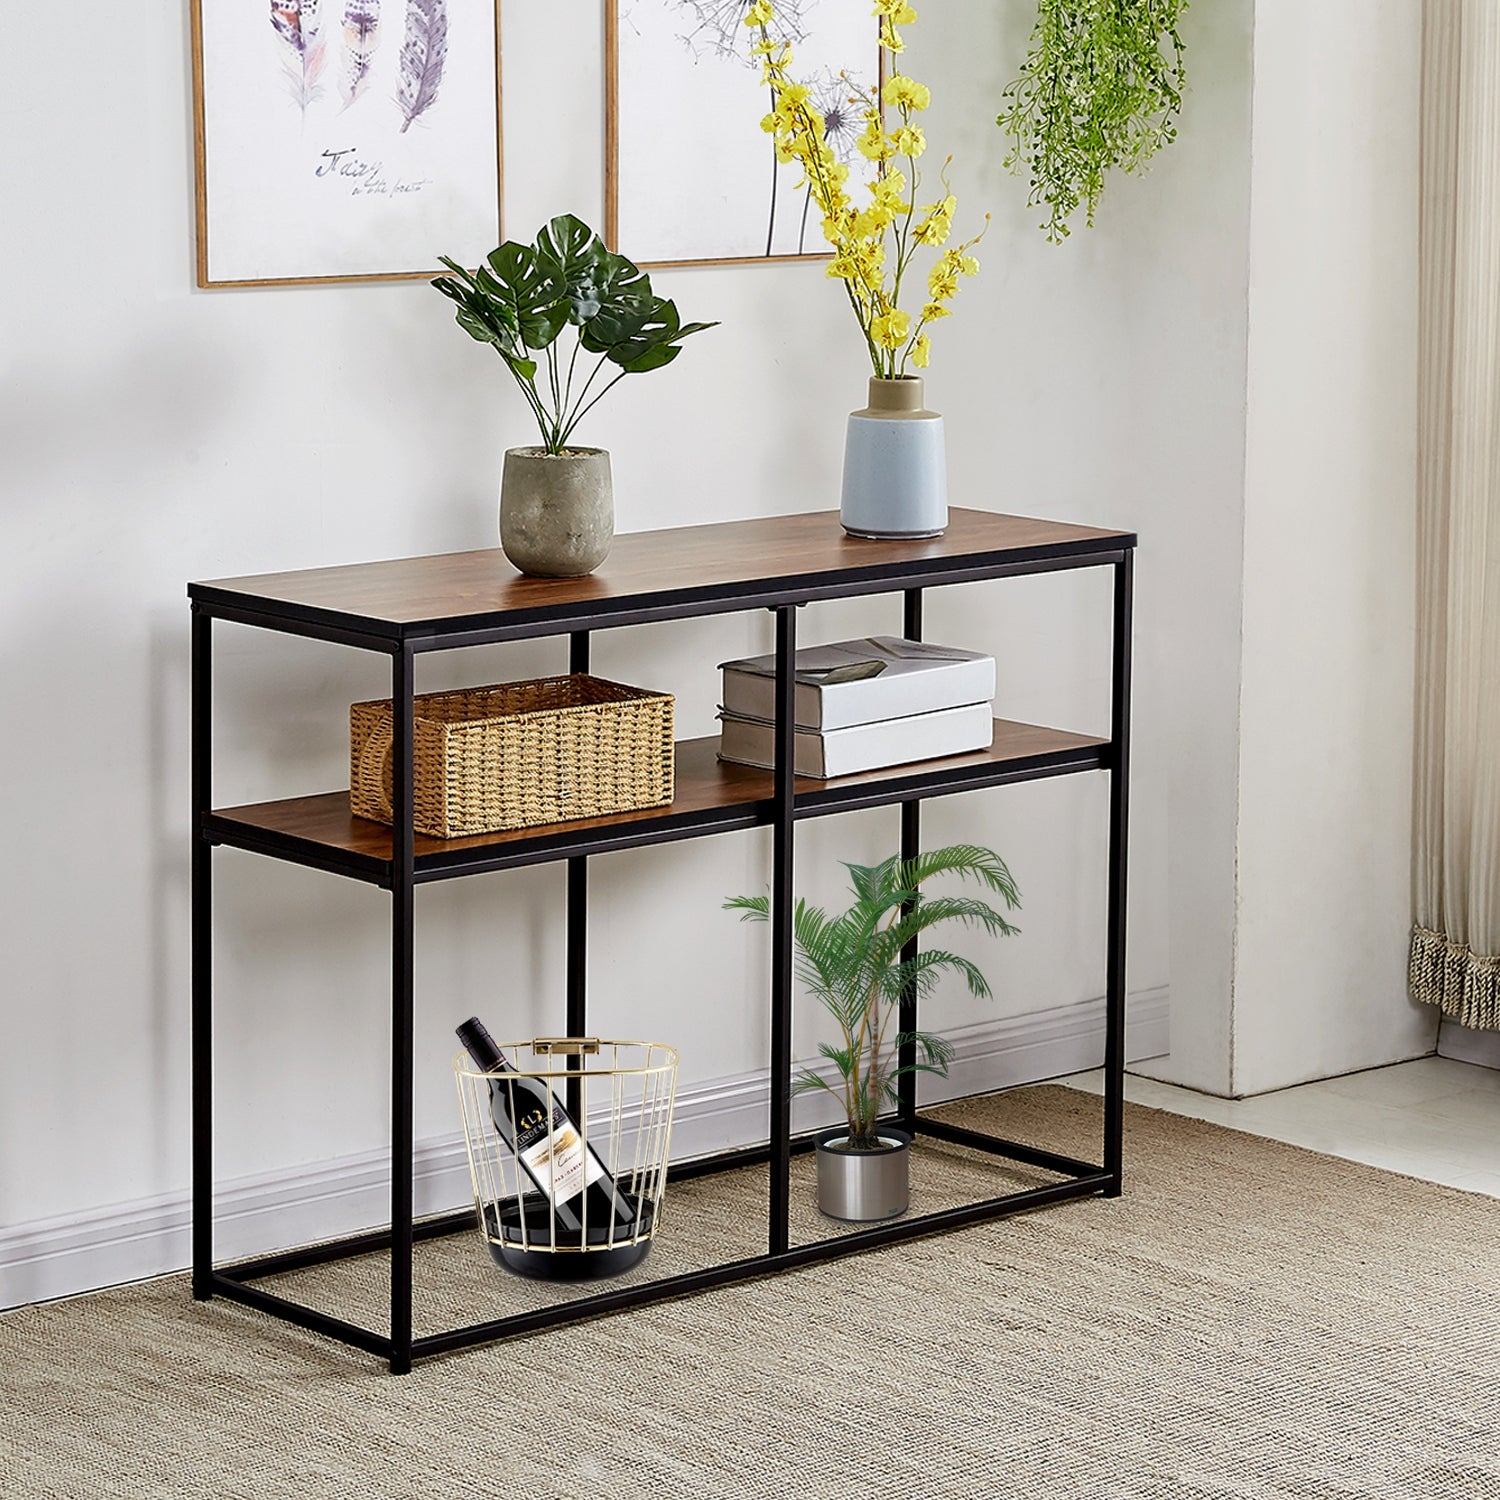 VECELO Coffee Table/Console Table Brong Finish Livingroom Furnature